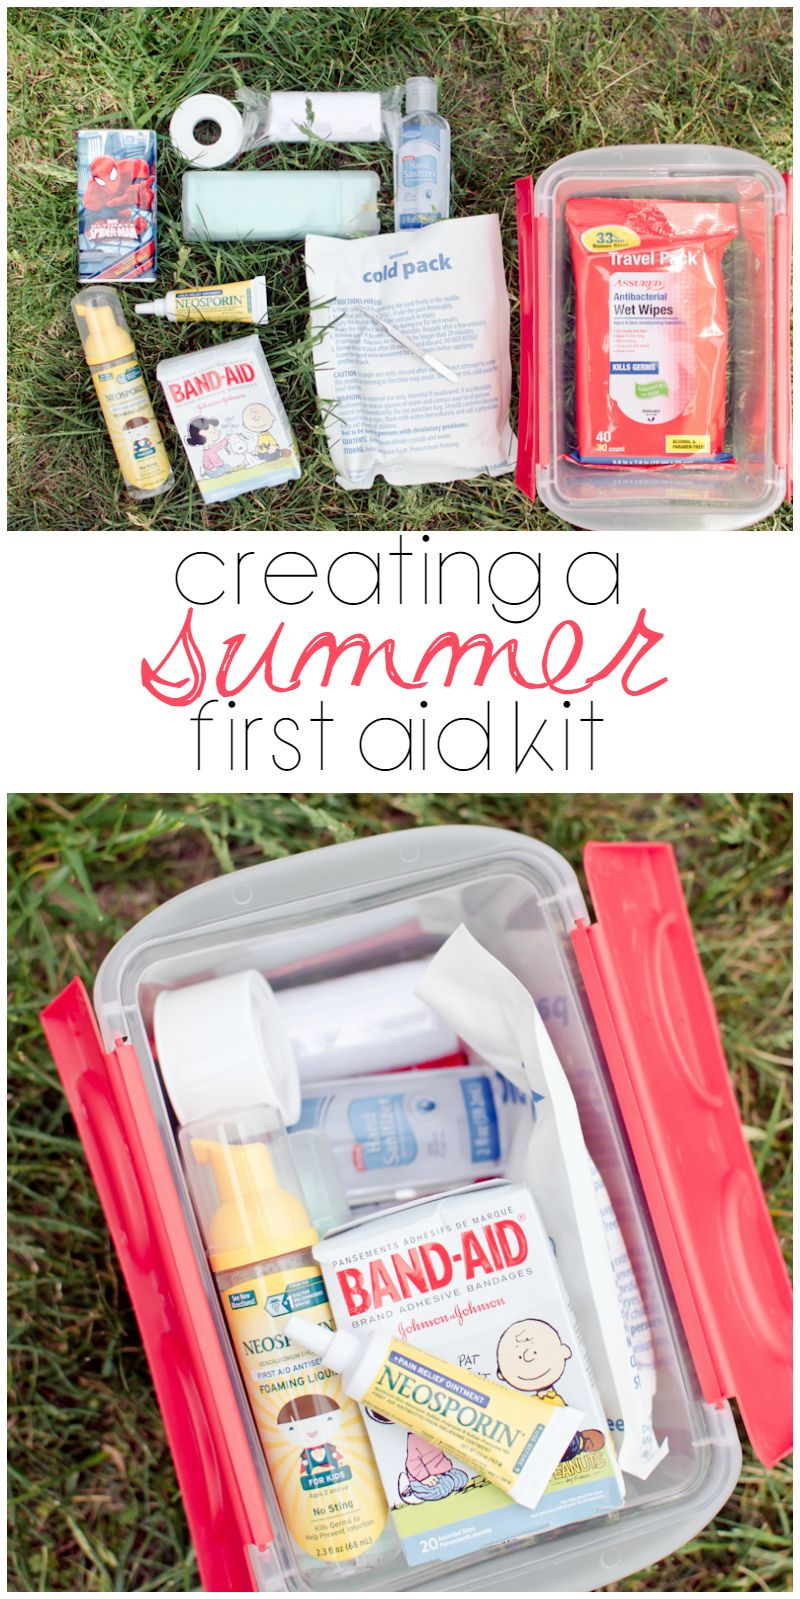 Creating a Summer First Aid Kit ListerineMom ad